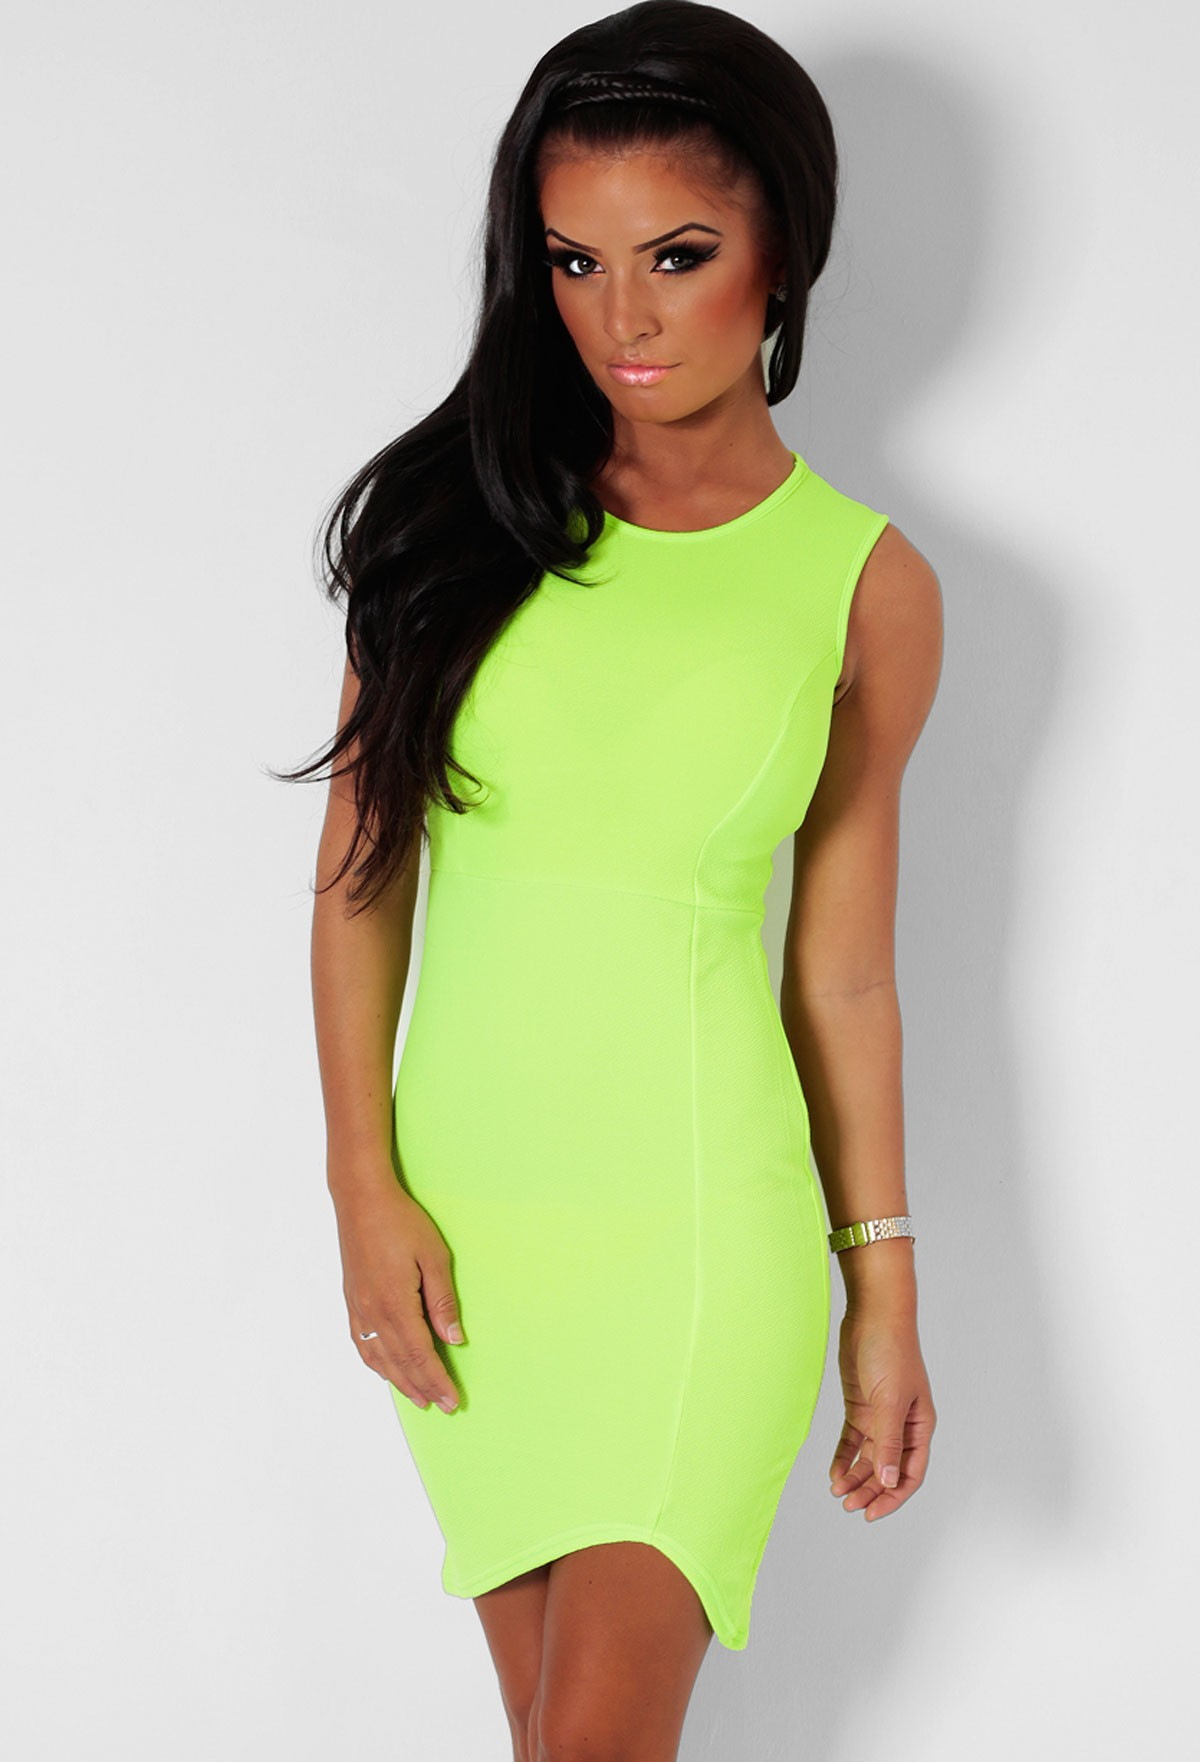 Key Lime Pie Neon Green Bodycon Midi Dress | Pink Boutique